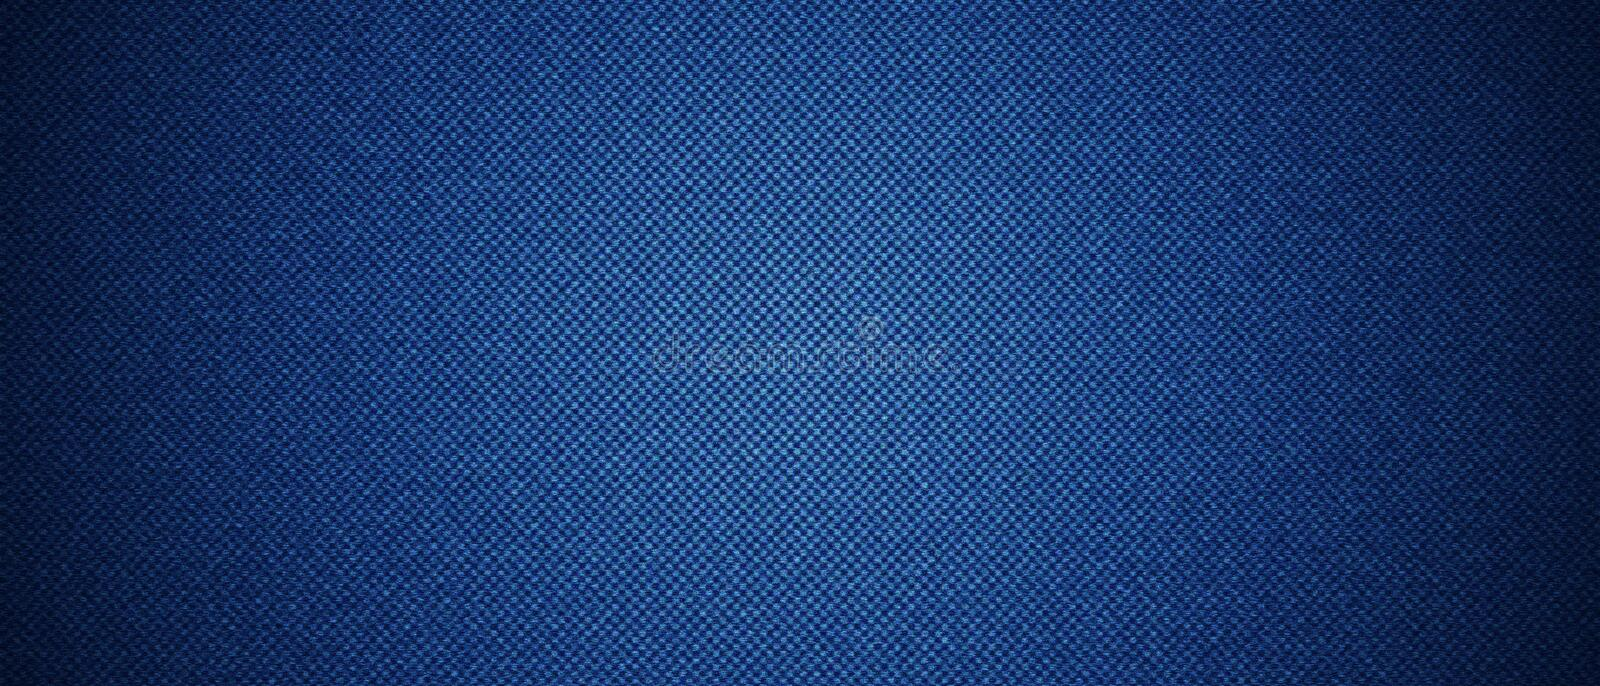 Denim jeans texture background royalty free stock photo